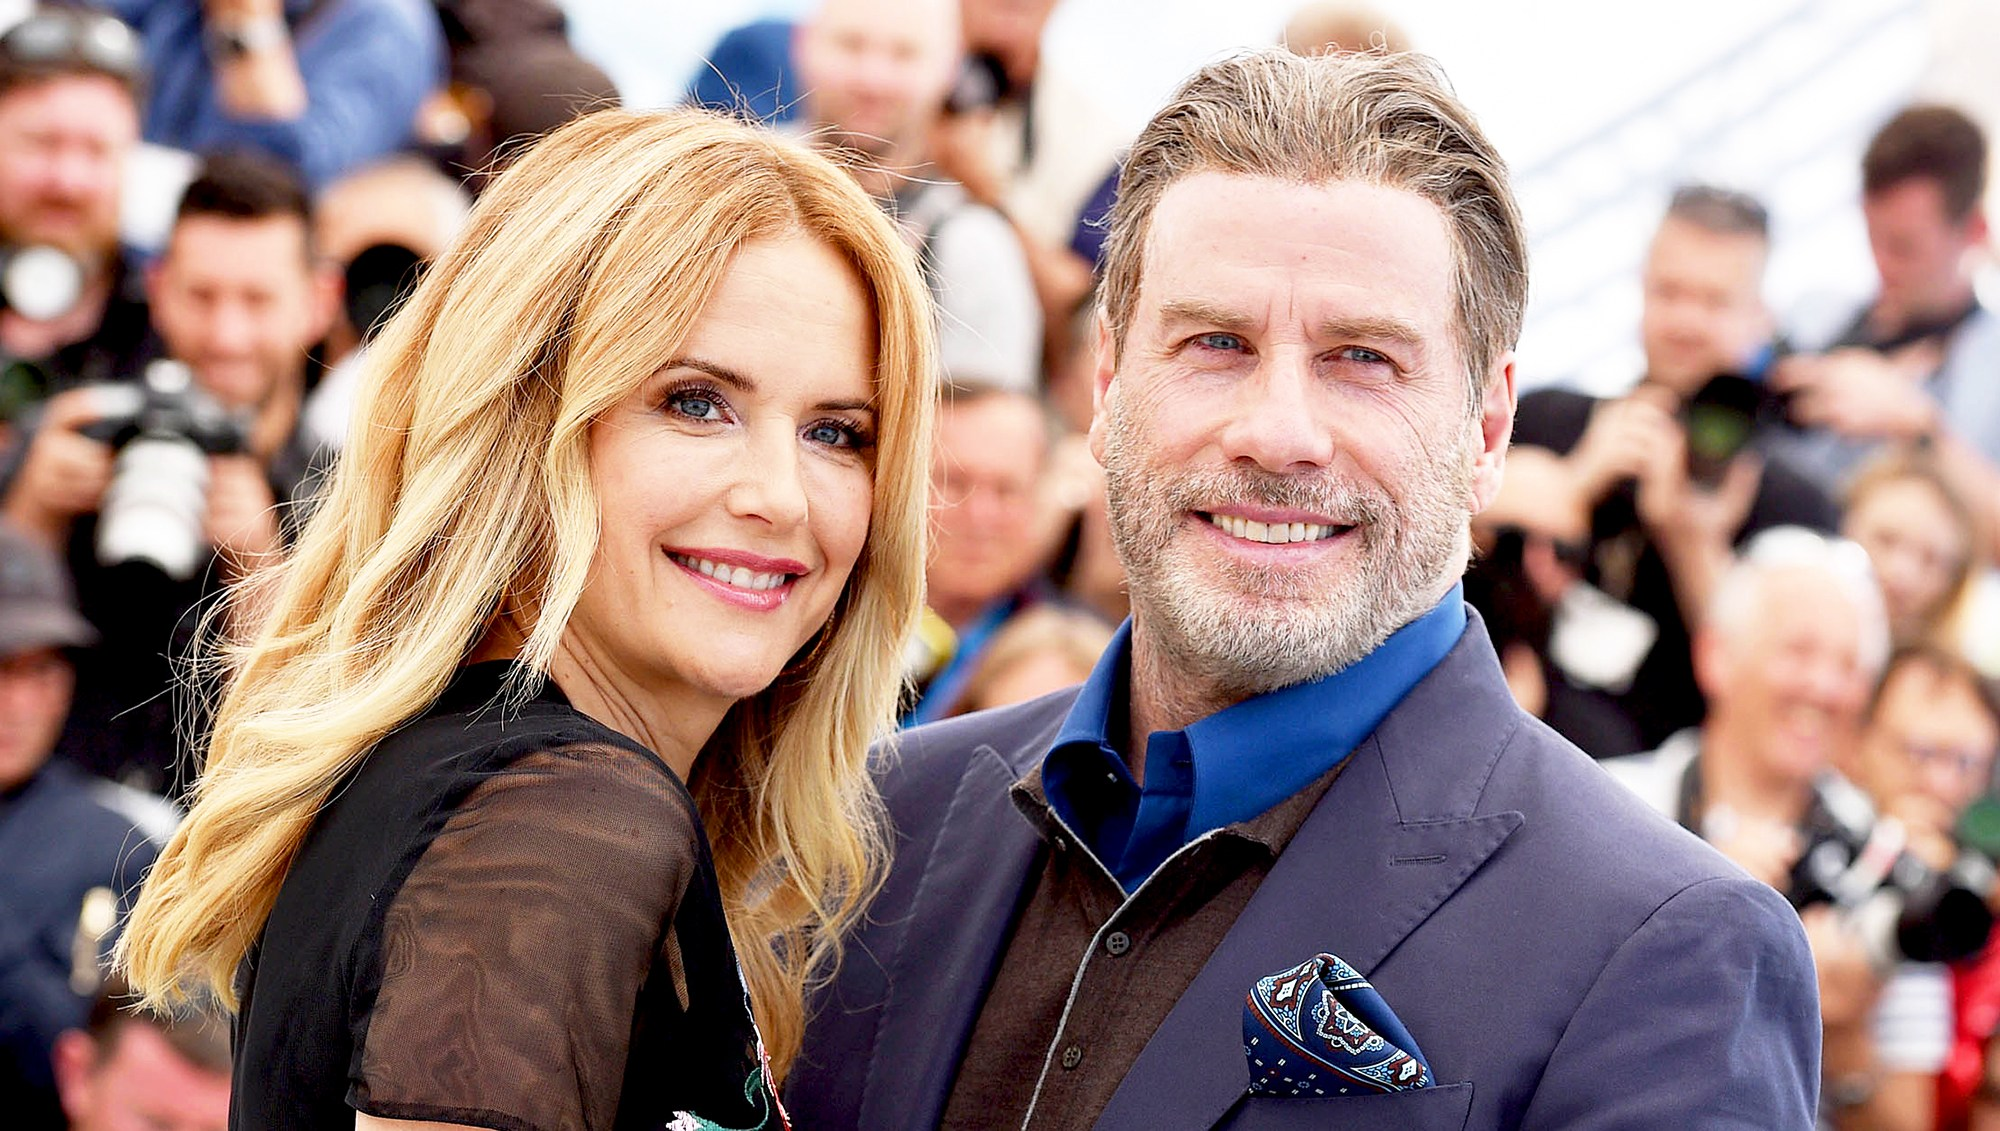 Kelly Preston and John Travolta attend the 71st annual Cannes Film Festival in France on May 15, 2018.